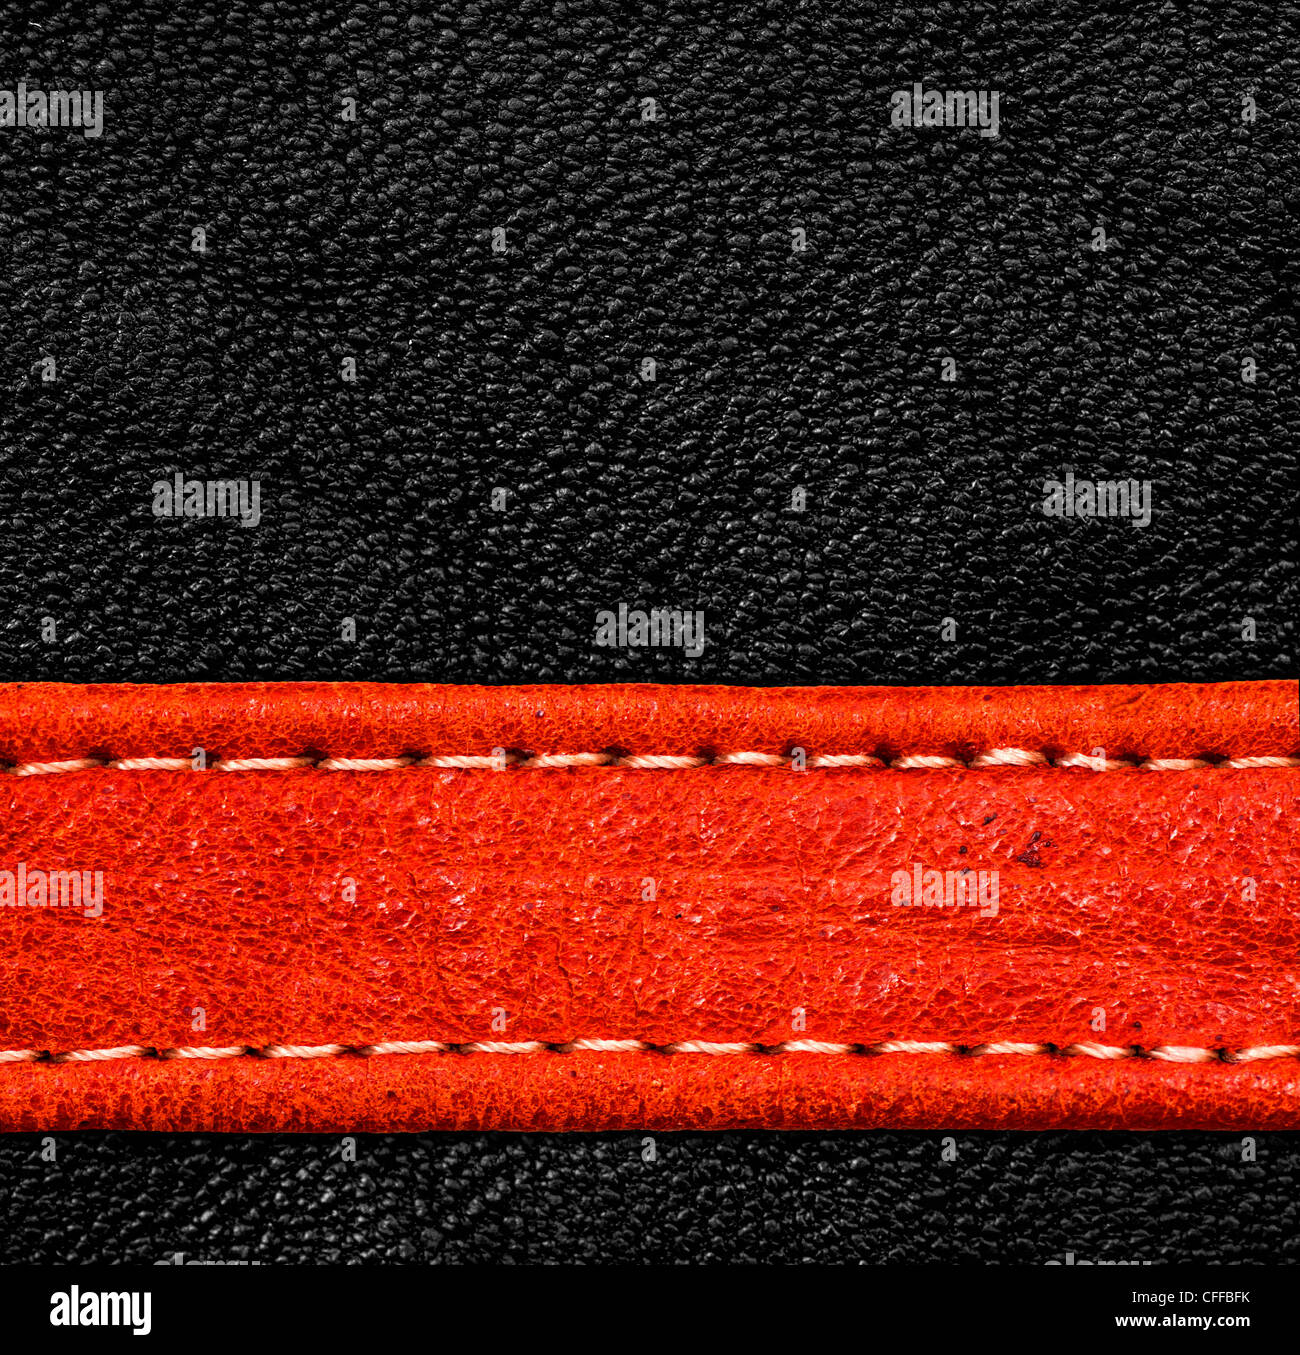 A brown leather texture. high resolution. Stock Photo